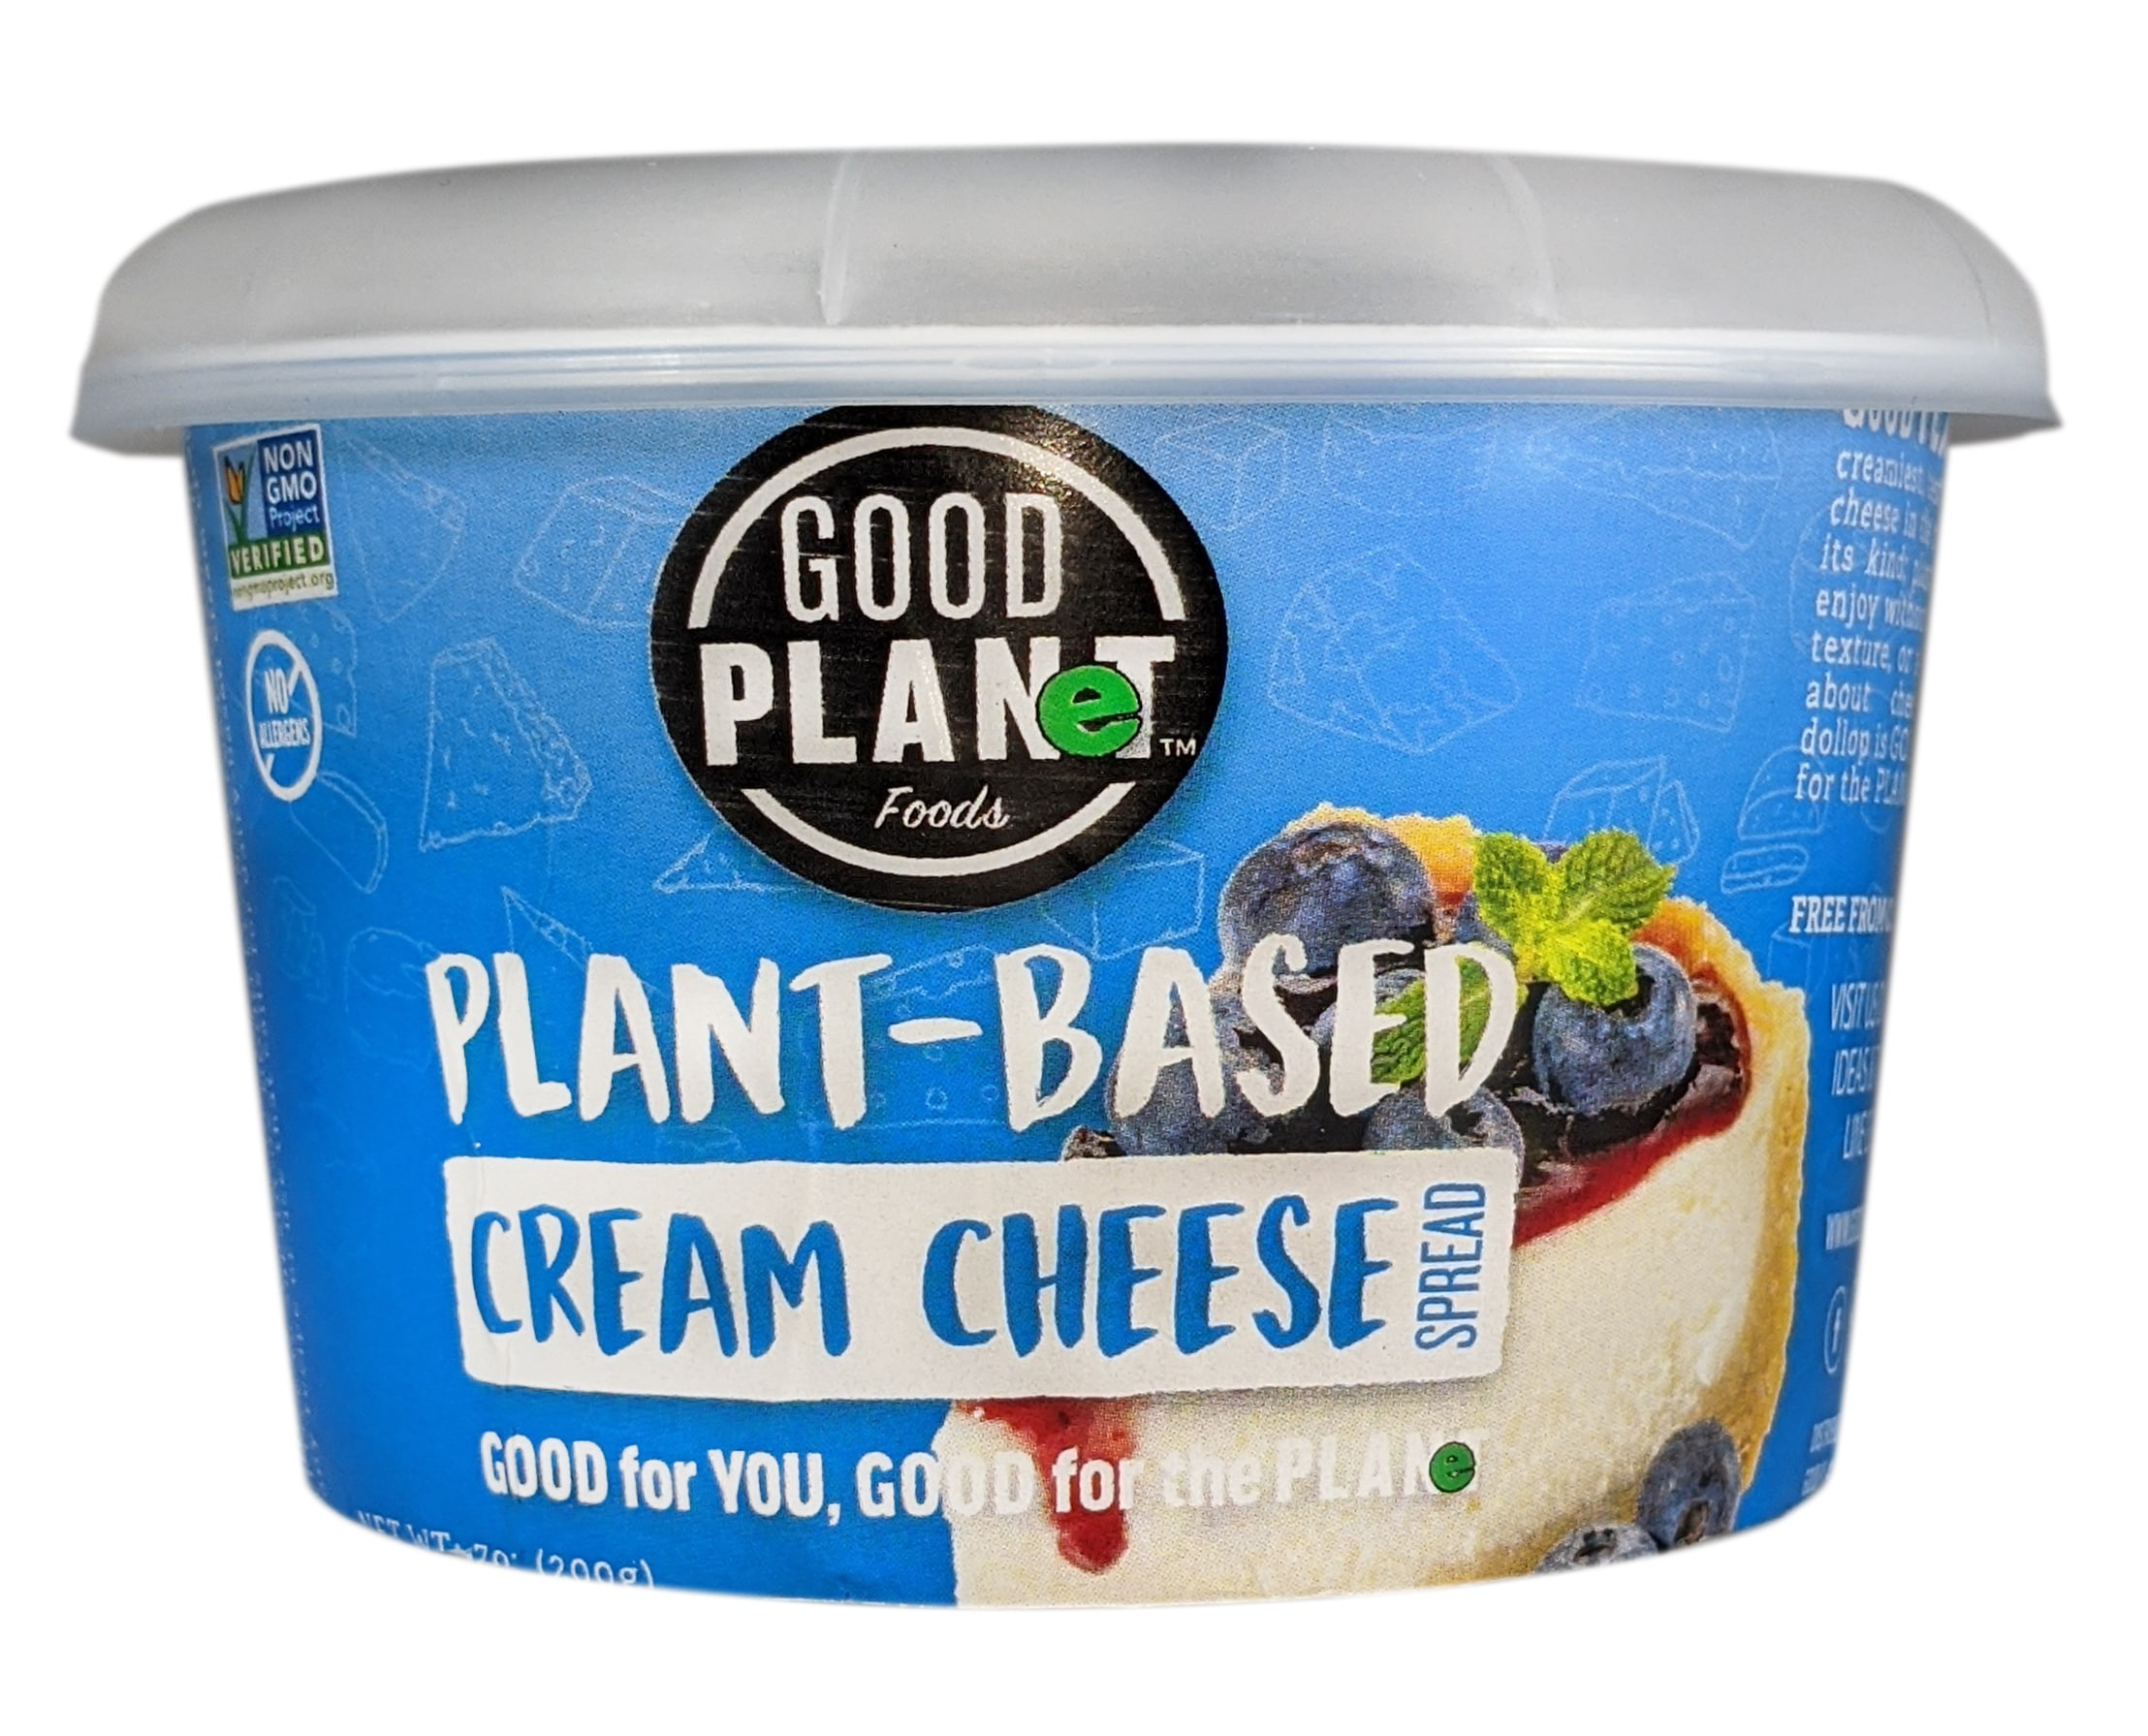 GOOD PLANeT Launches New Dairy-Free Cream Cheese